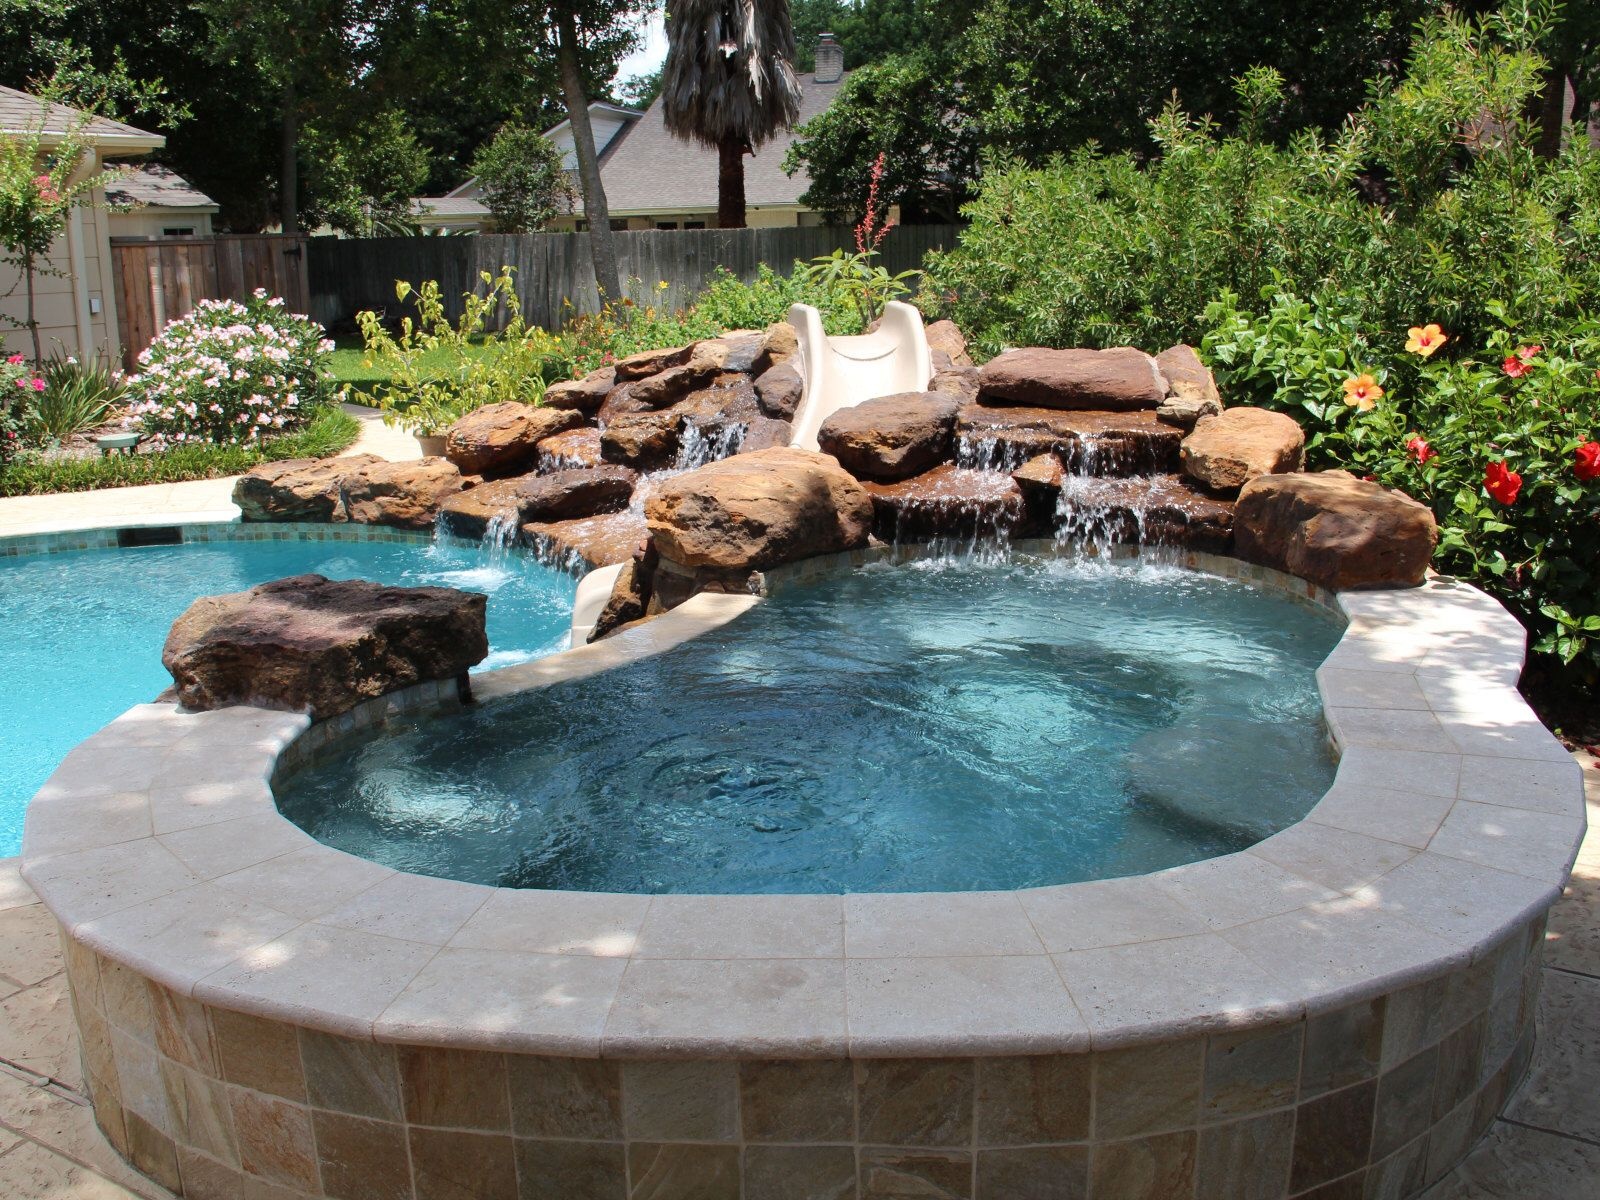 Outdoor Jacuzzi Ideas Designs Pros And Cons A Complete Guide Jacuzzi Outdoor Pool Swimming Pool Designs